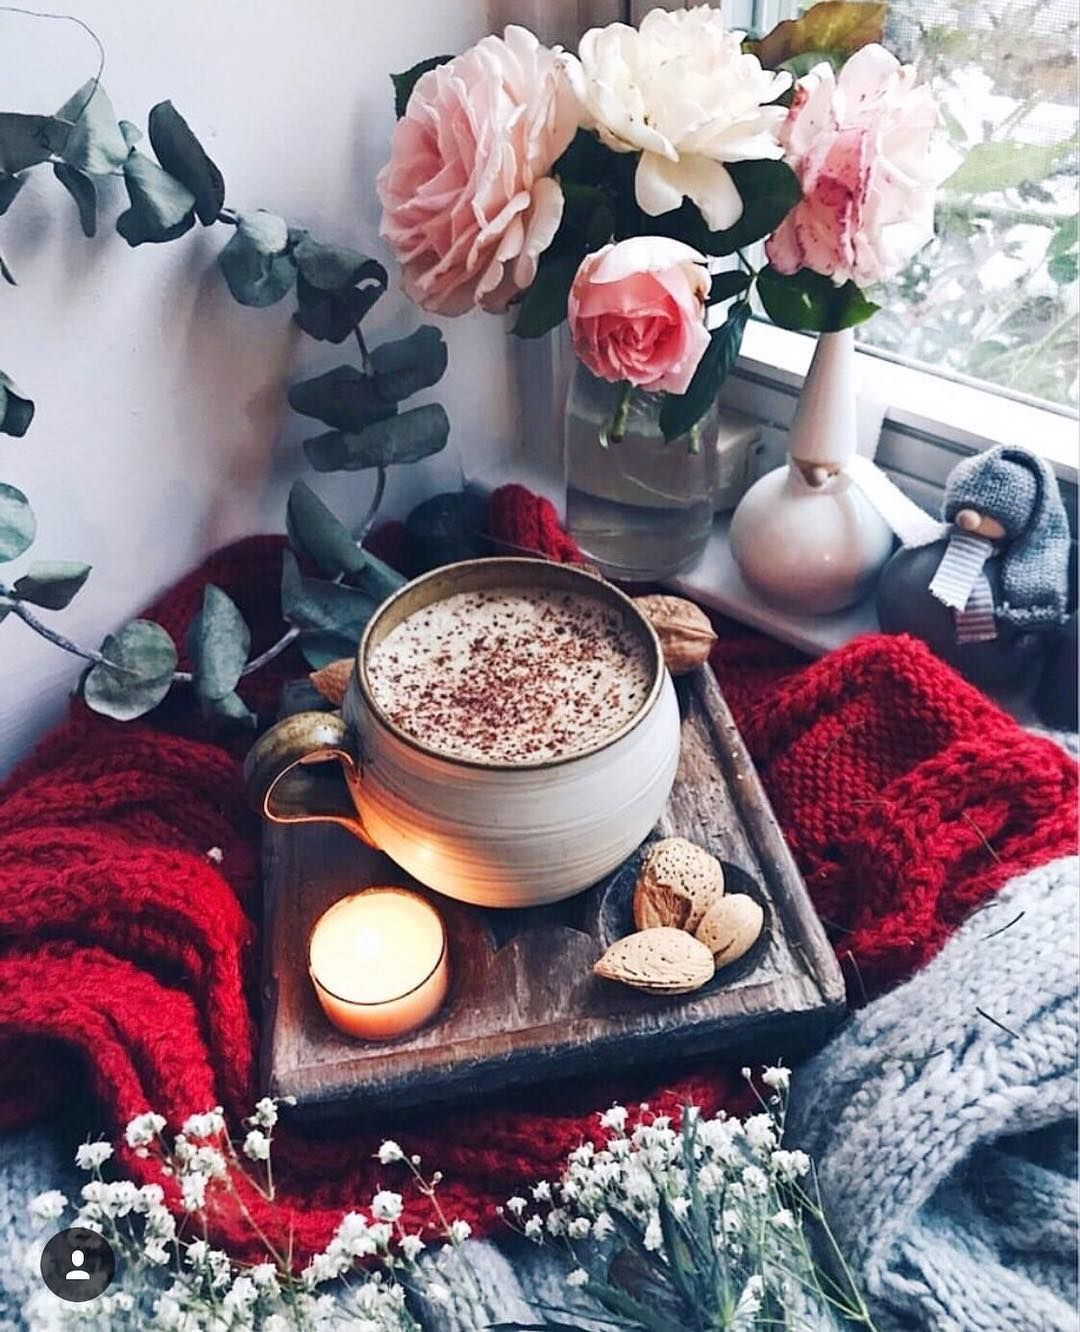 Drink cacao home cosy room flowers rose bed romantic